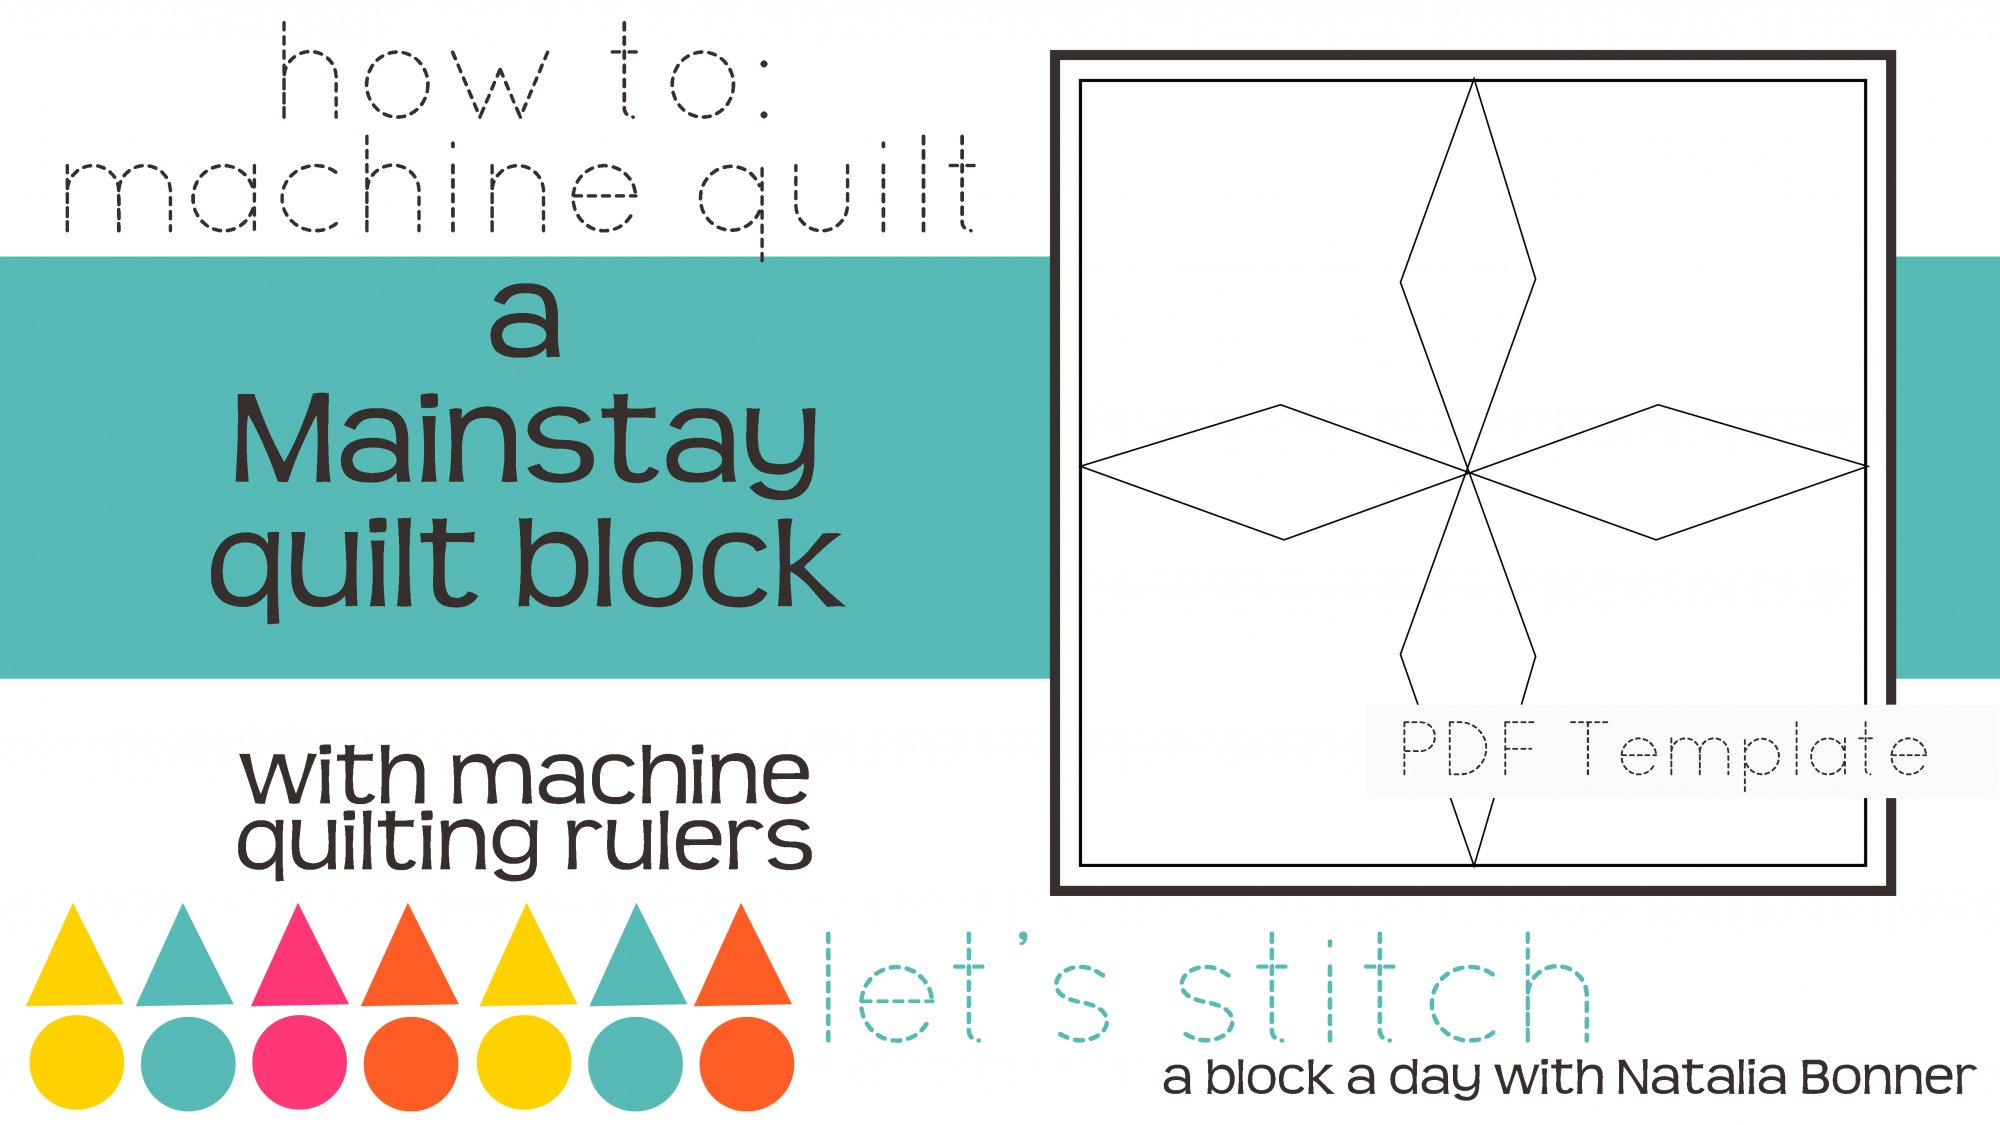 Let's Stitch - A Block a Day With Natalia Bonner - PDF - Mainstay